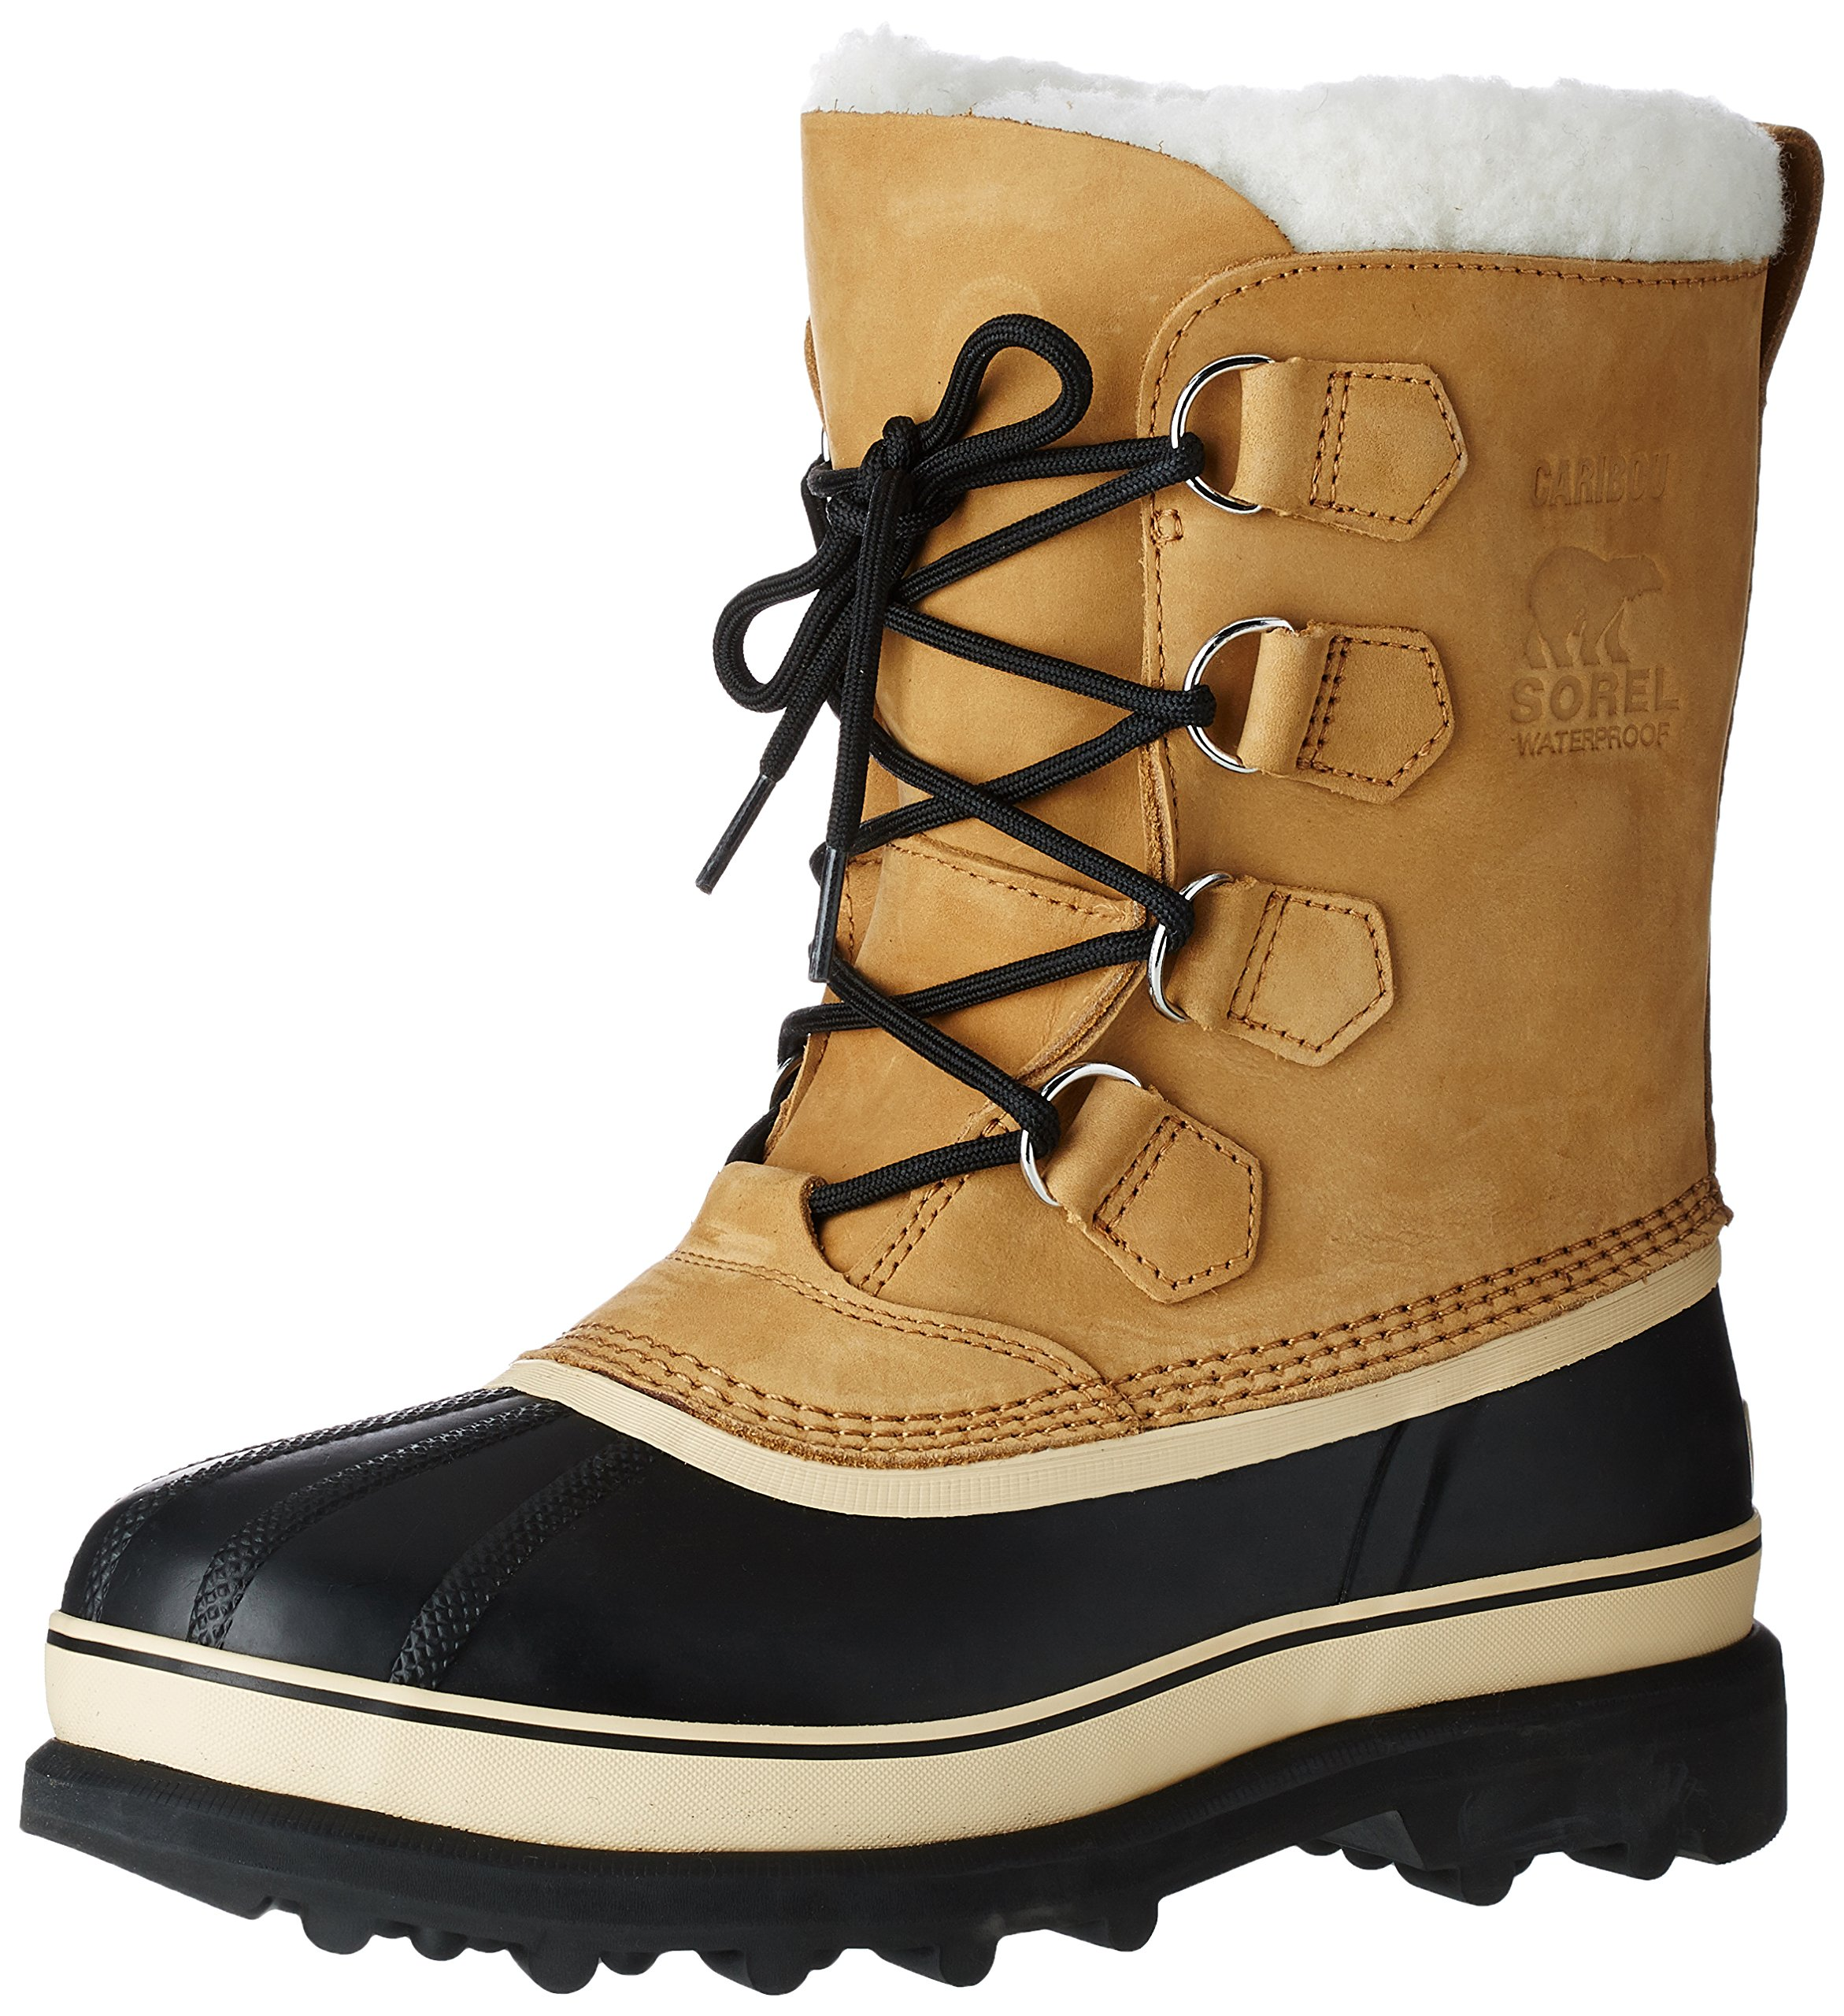 Sorel Men's Caribou NM1000 Boot,Buff,11.5 M